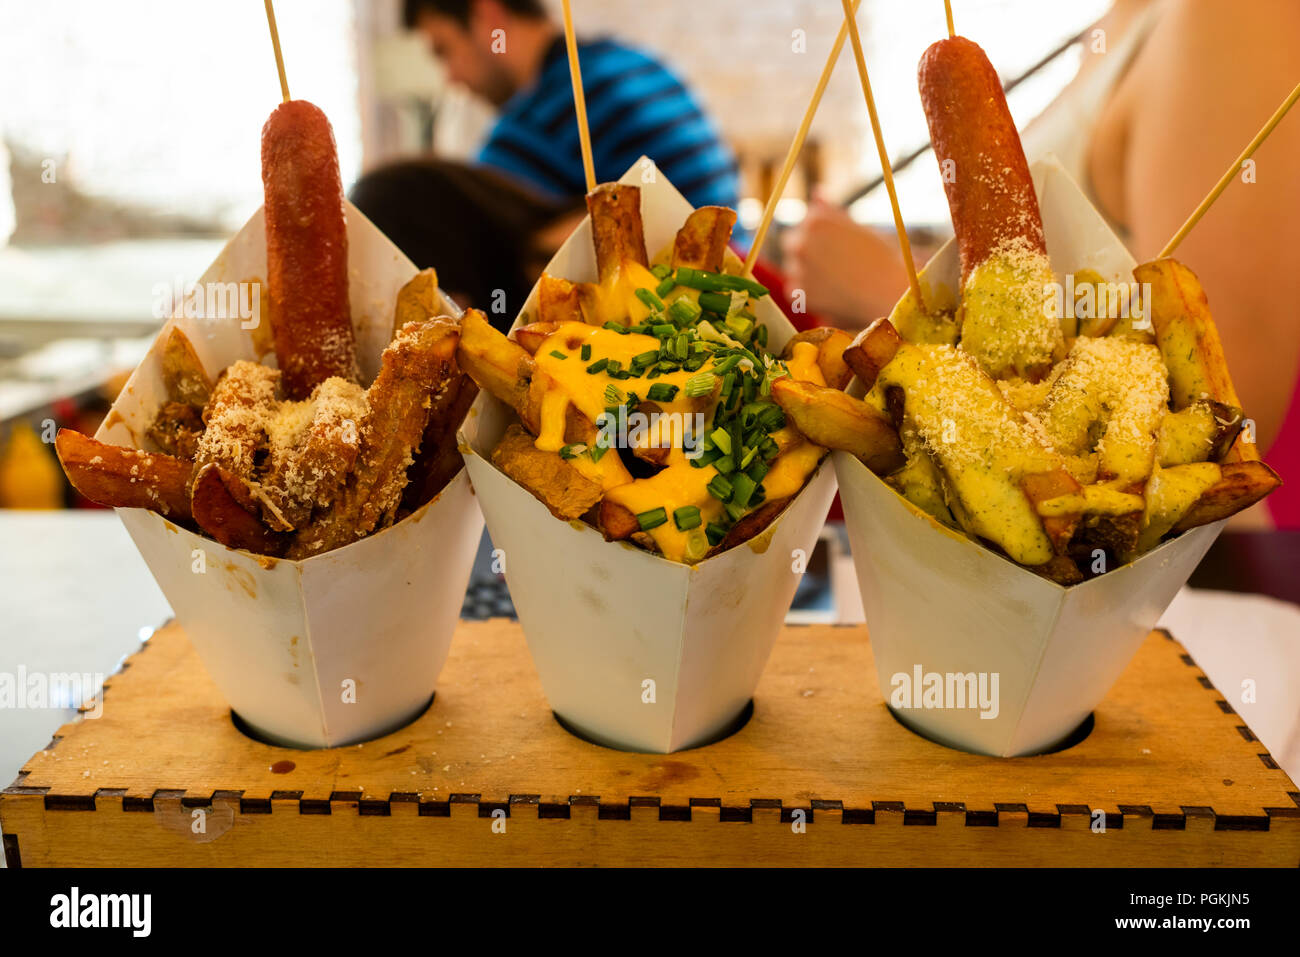 sausages with potatoes in fast food - Stock Image